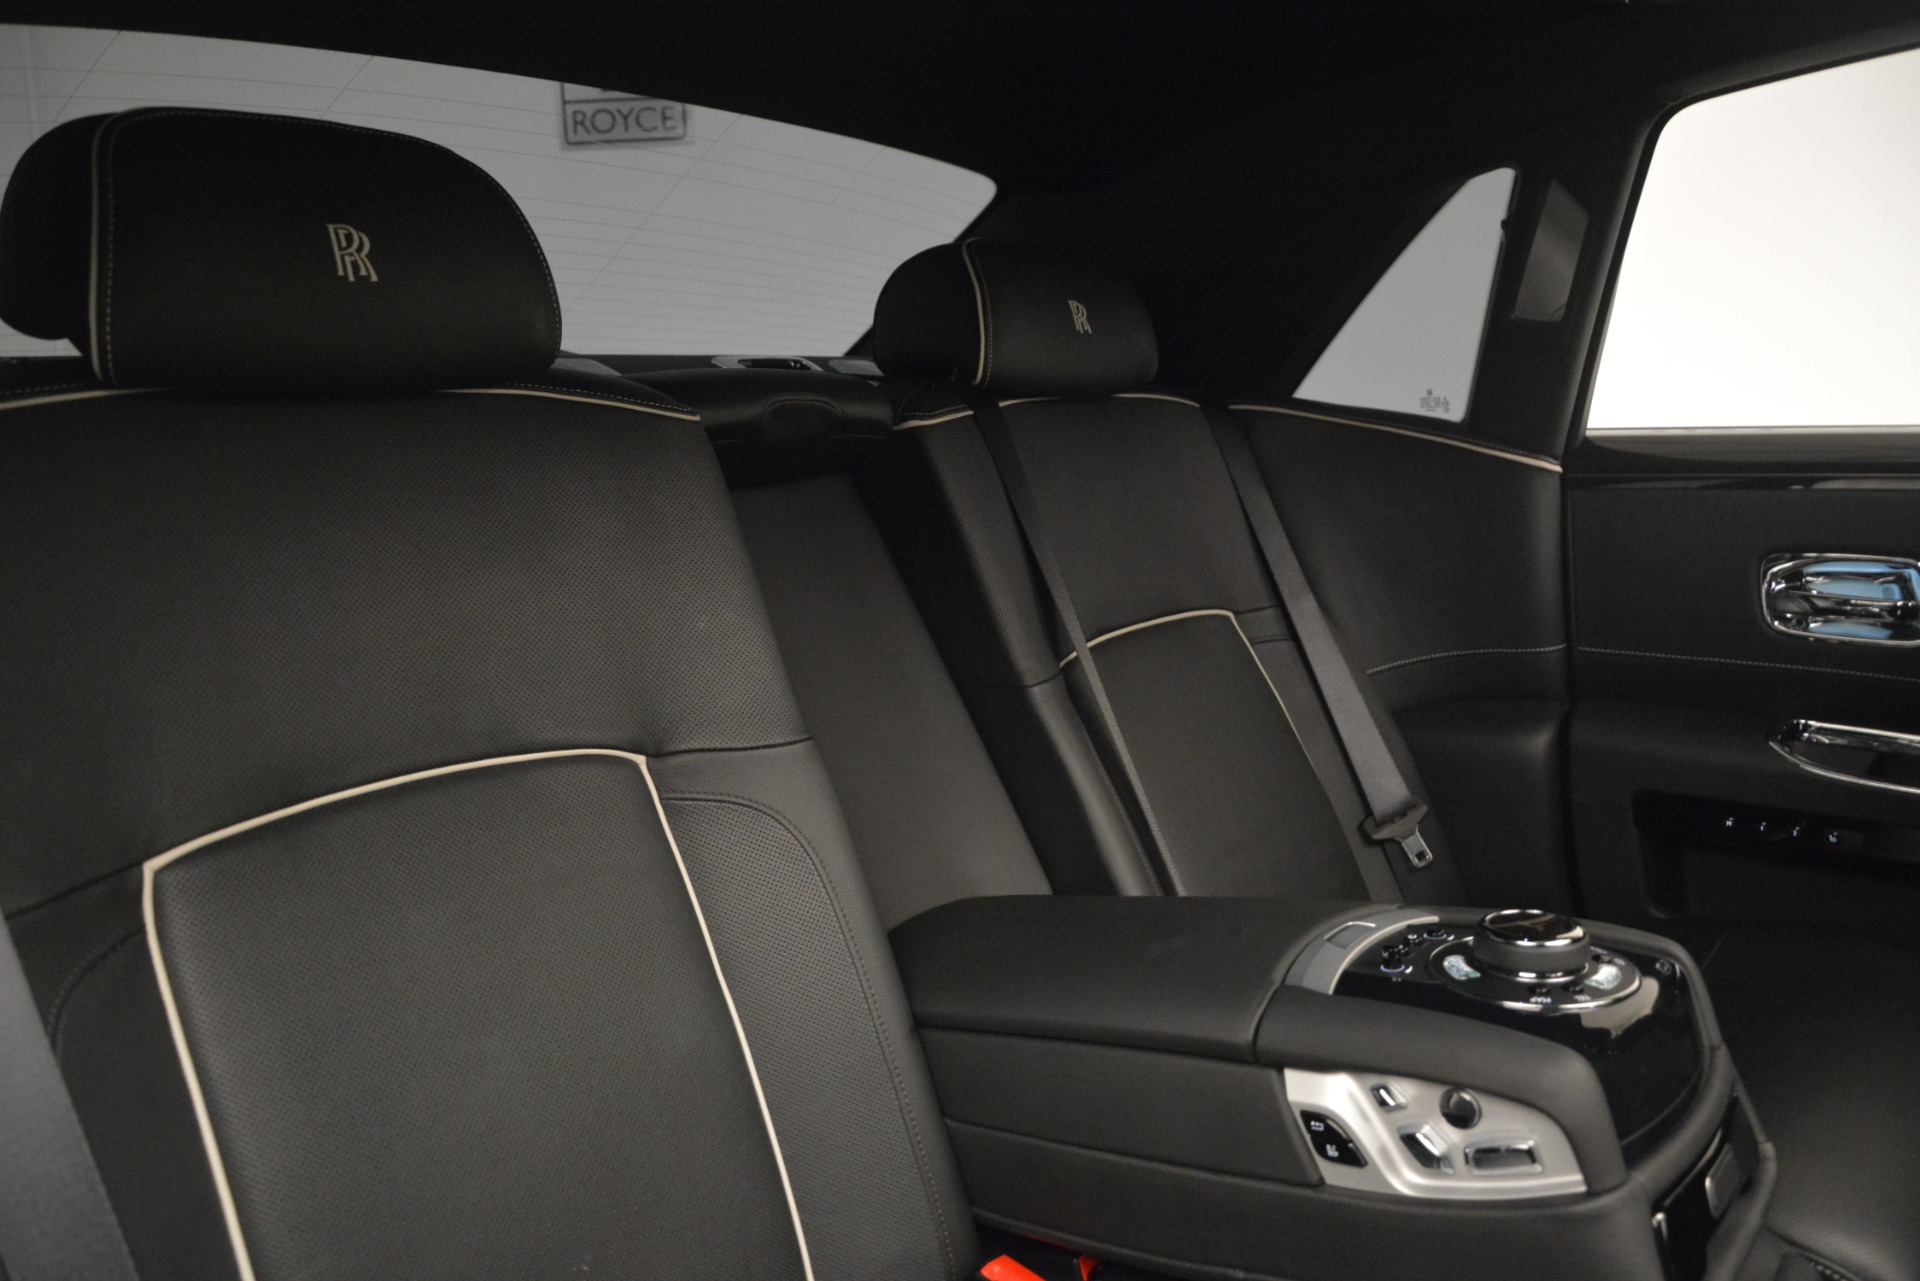 Used 2014 Rolls-Royce Ghost V-Spec For Sale In Westport, CT 2989_p25